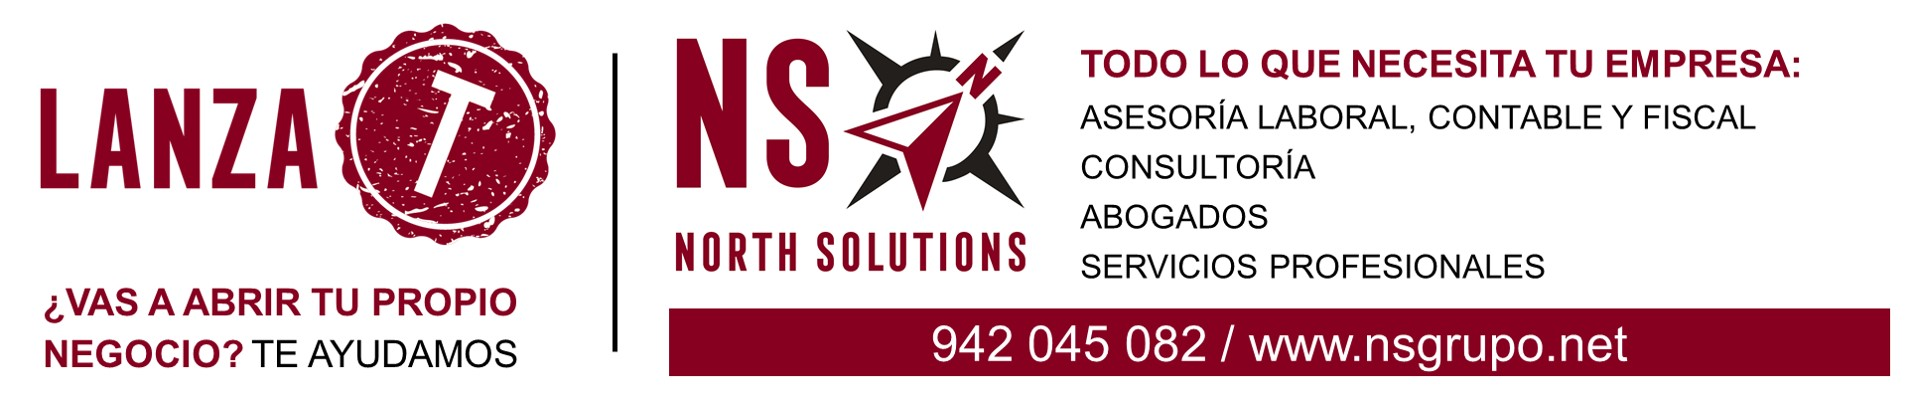 North Solutions Asesores